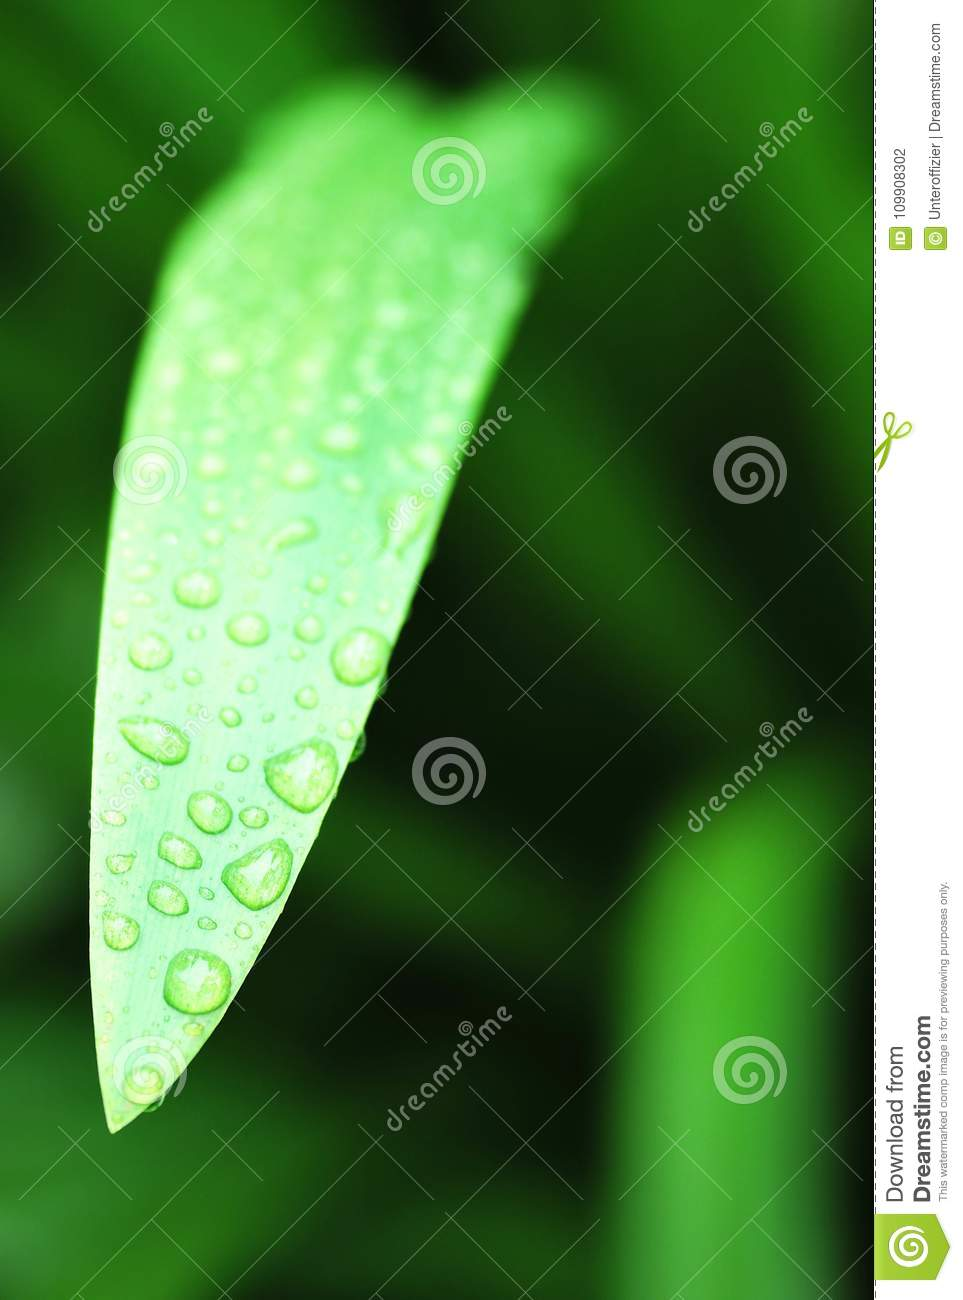 A leaf of a plant with droplets of water after the rain